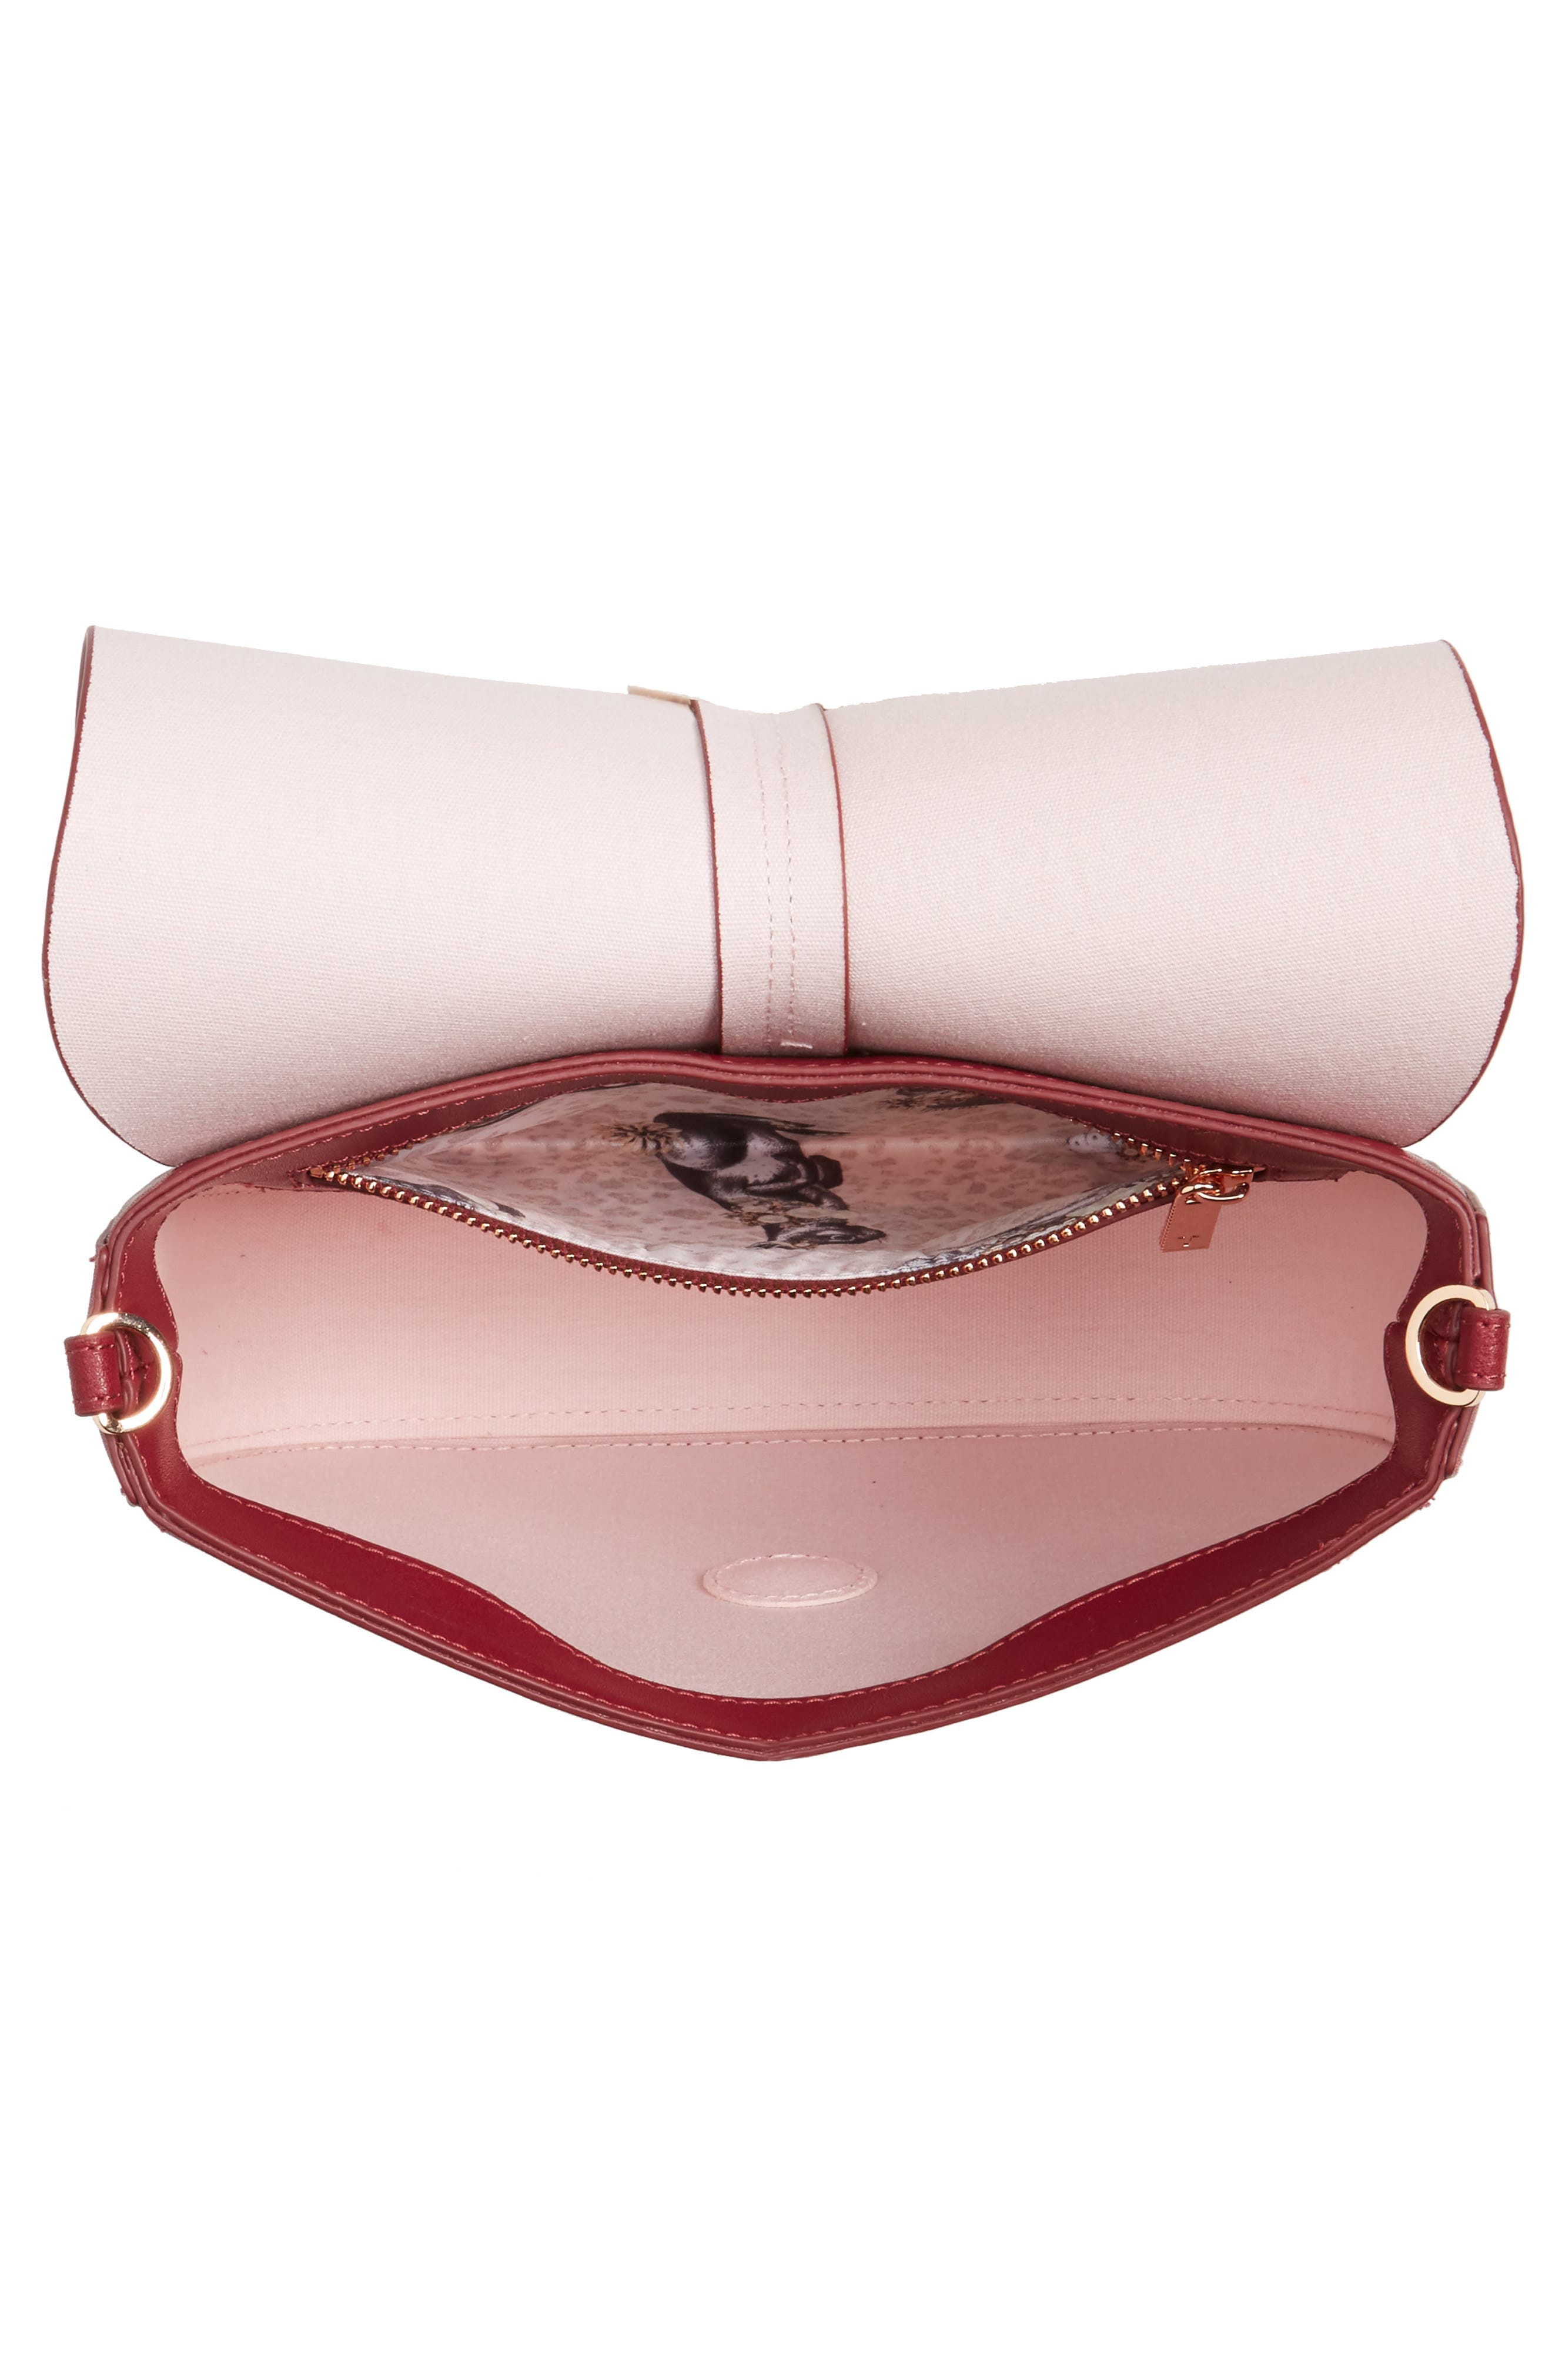 Kittii Cat Leather Crossbody Bag,                             Alternate thumbnail 4, color,                             Oxblood